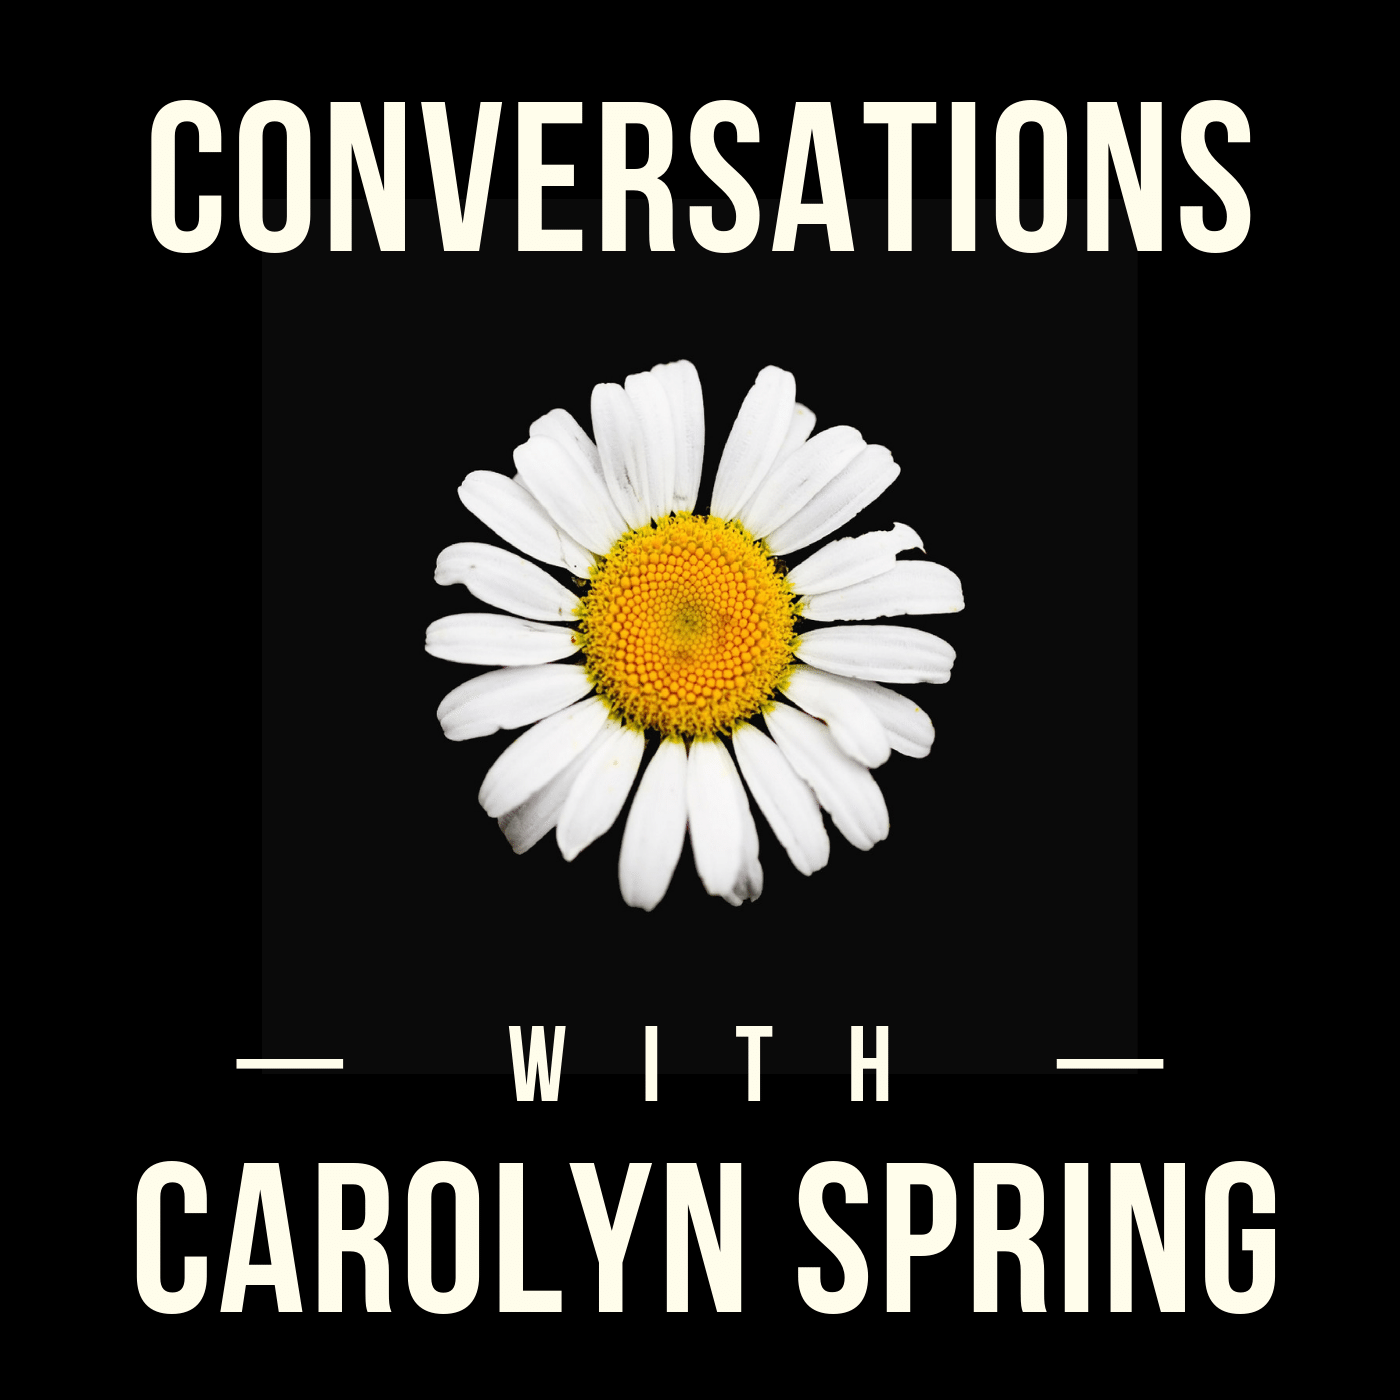 Conversations with Carolyn Spring